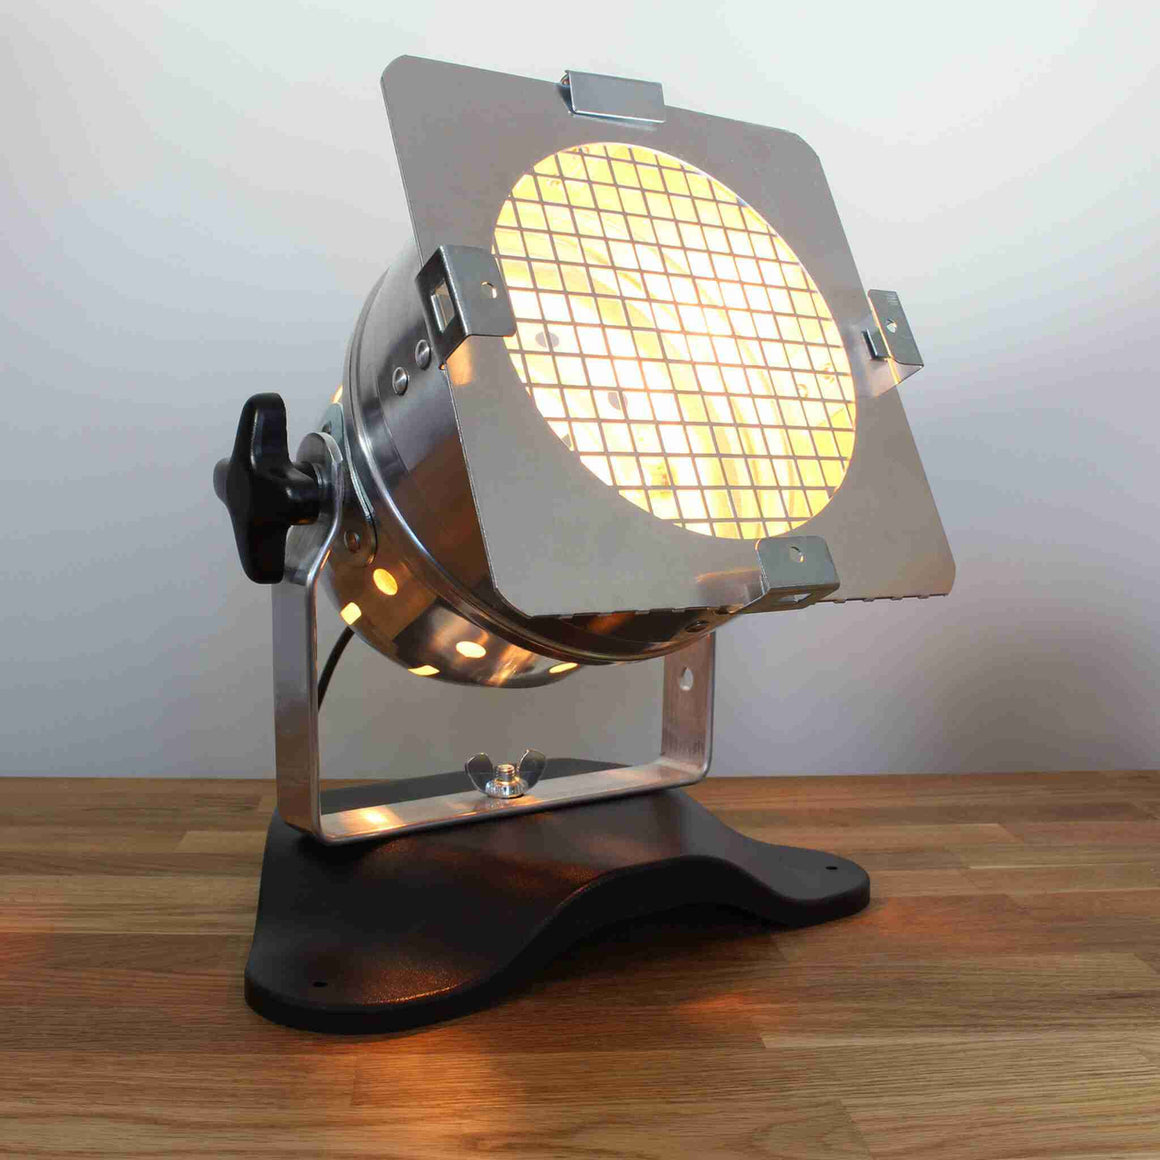 Lampsy Theatre Spot Light Table Lamp - Chrome - Table Lamps - Lampsy